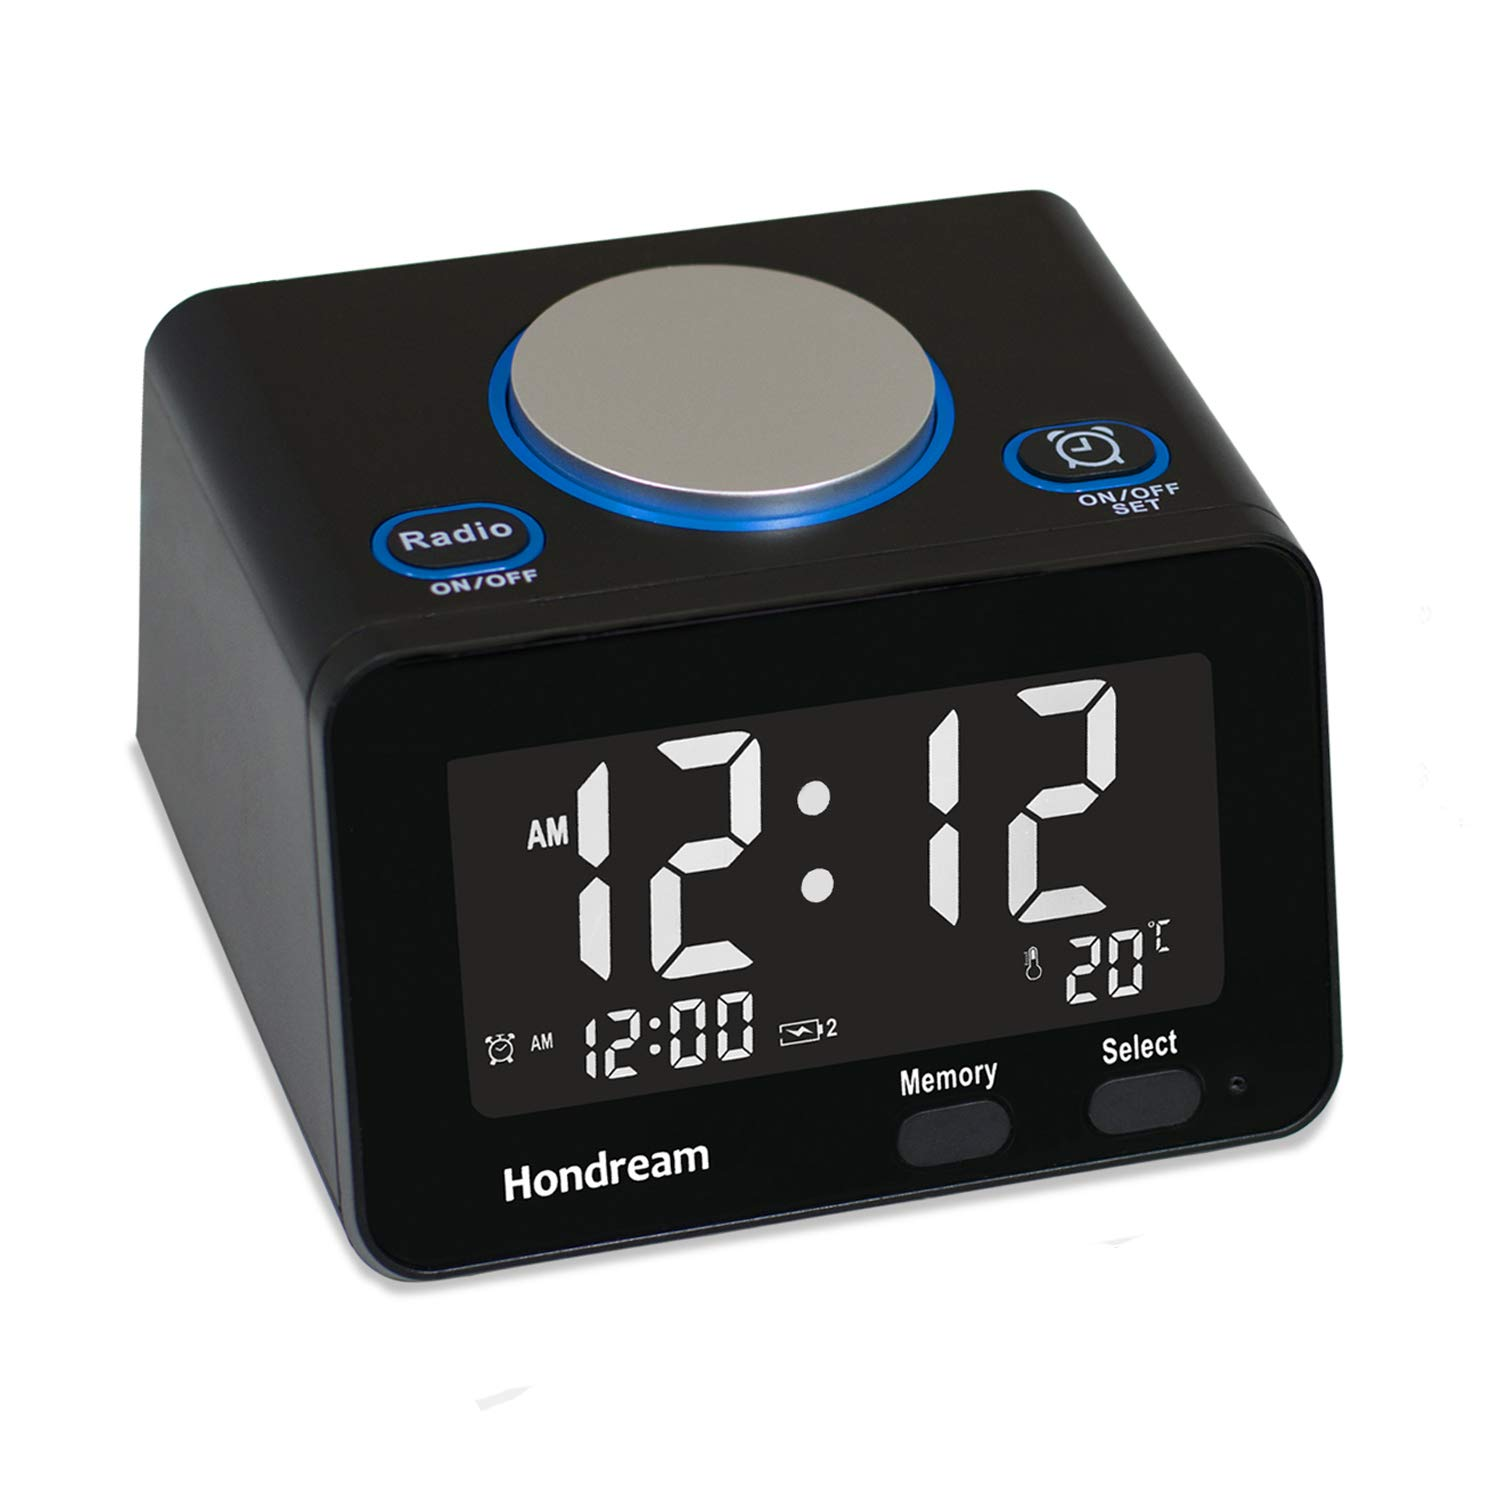 Alarm Clock, USB Alarm Clock, Digital Alarm Clock Radio with USB Phone Charger, FM Radio, Thermometer and LCD screen for Bedside, Bedroom, Kitchen, Hotel, Table, Desk (Y0-1ADN-D66Z)